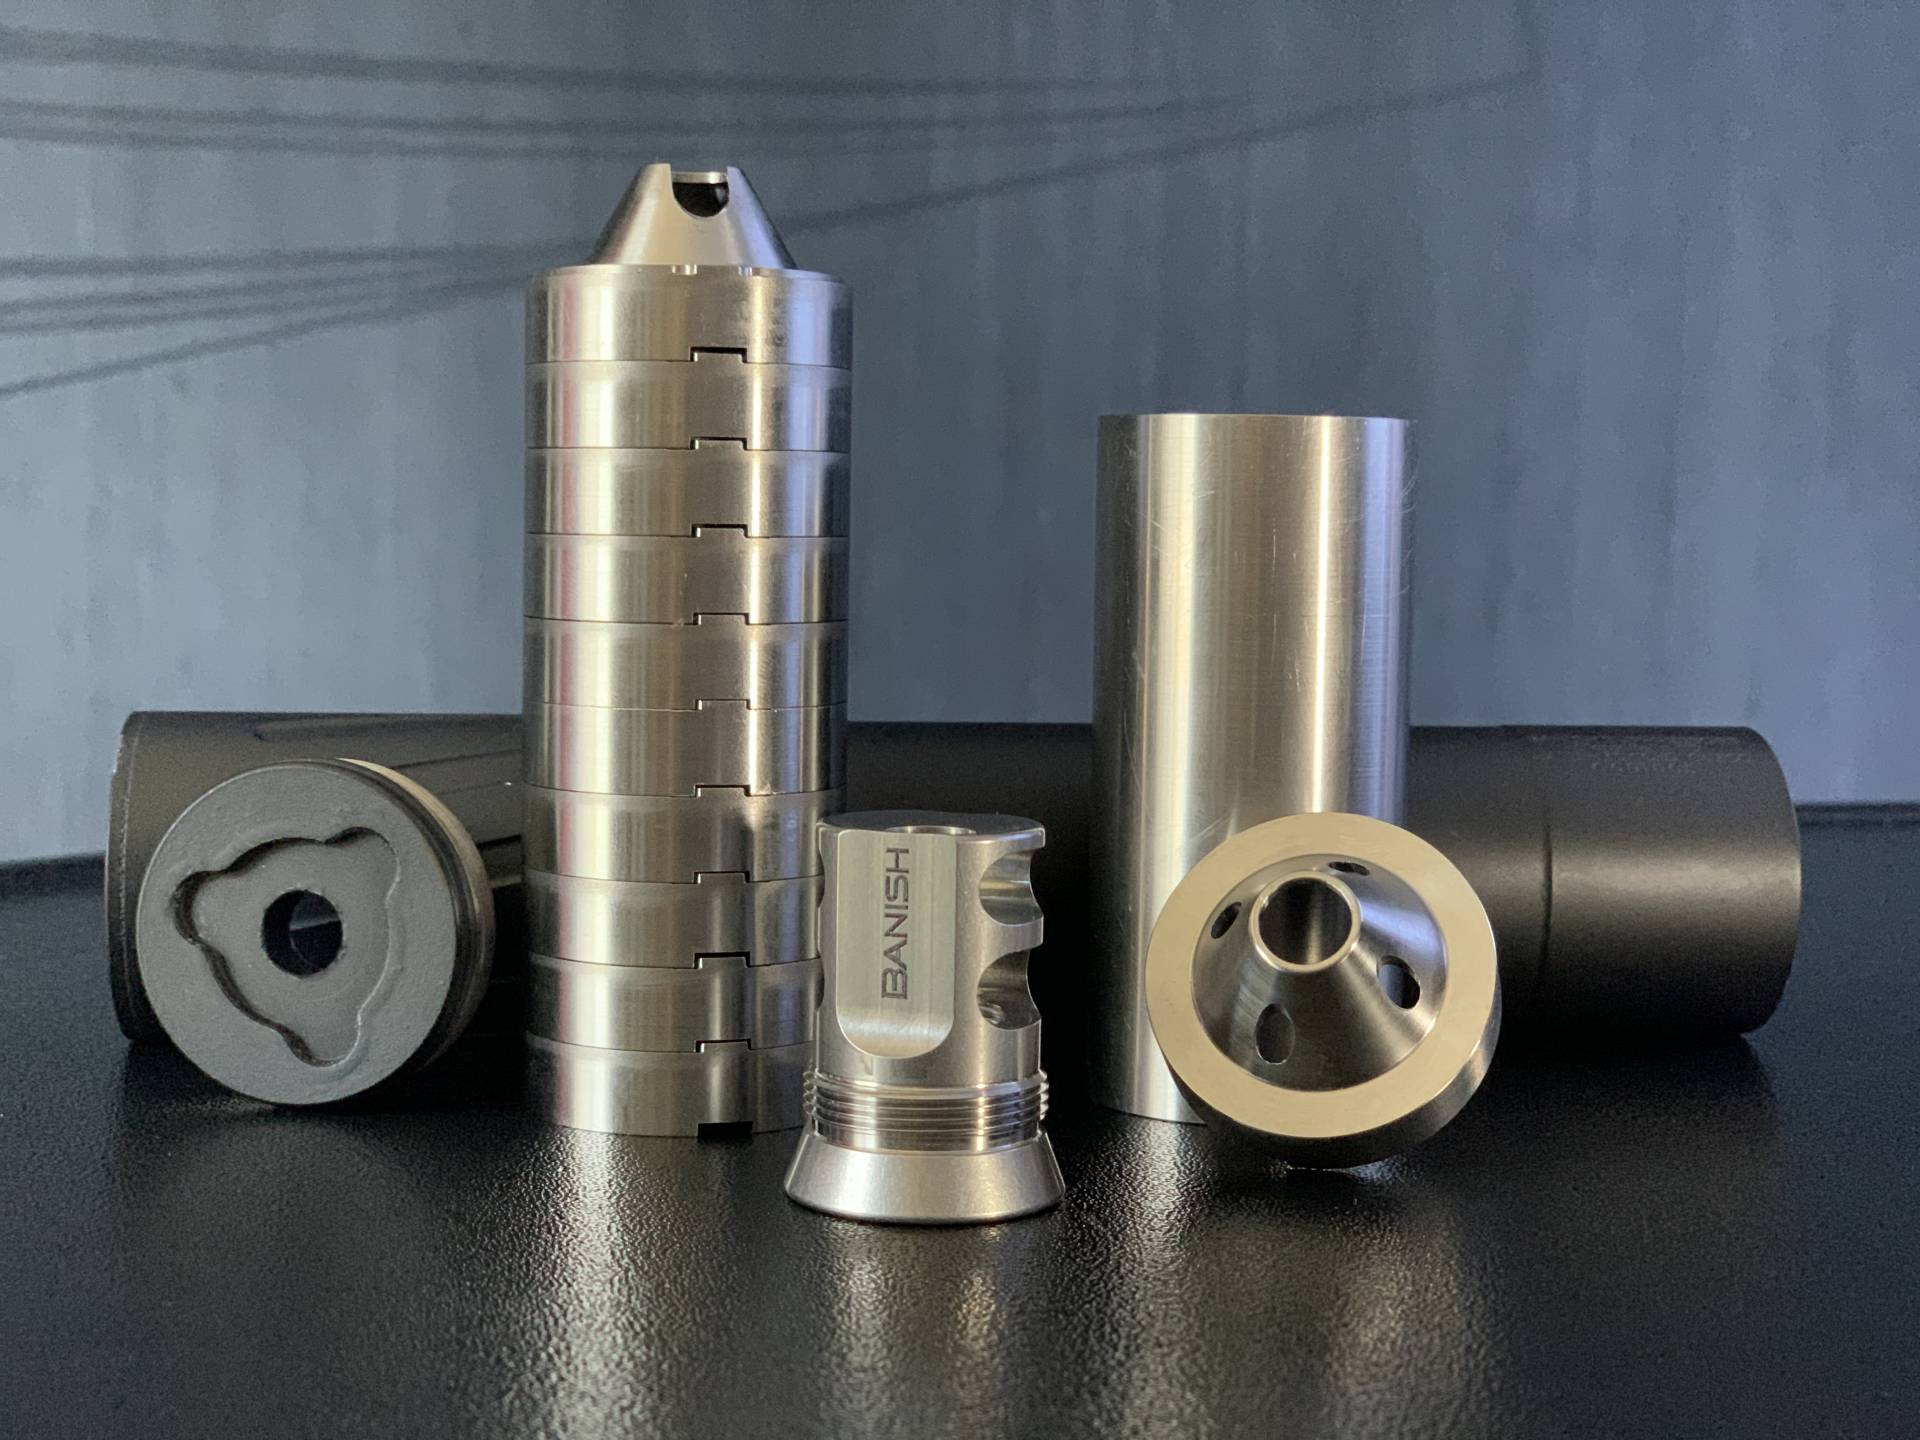 Muzzle Brake vs. Compensator: Which is right for your rifle?